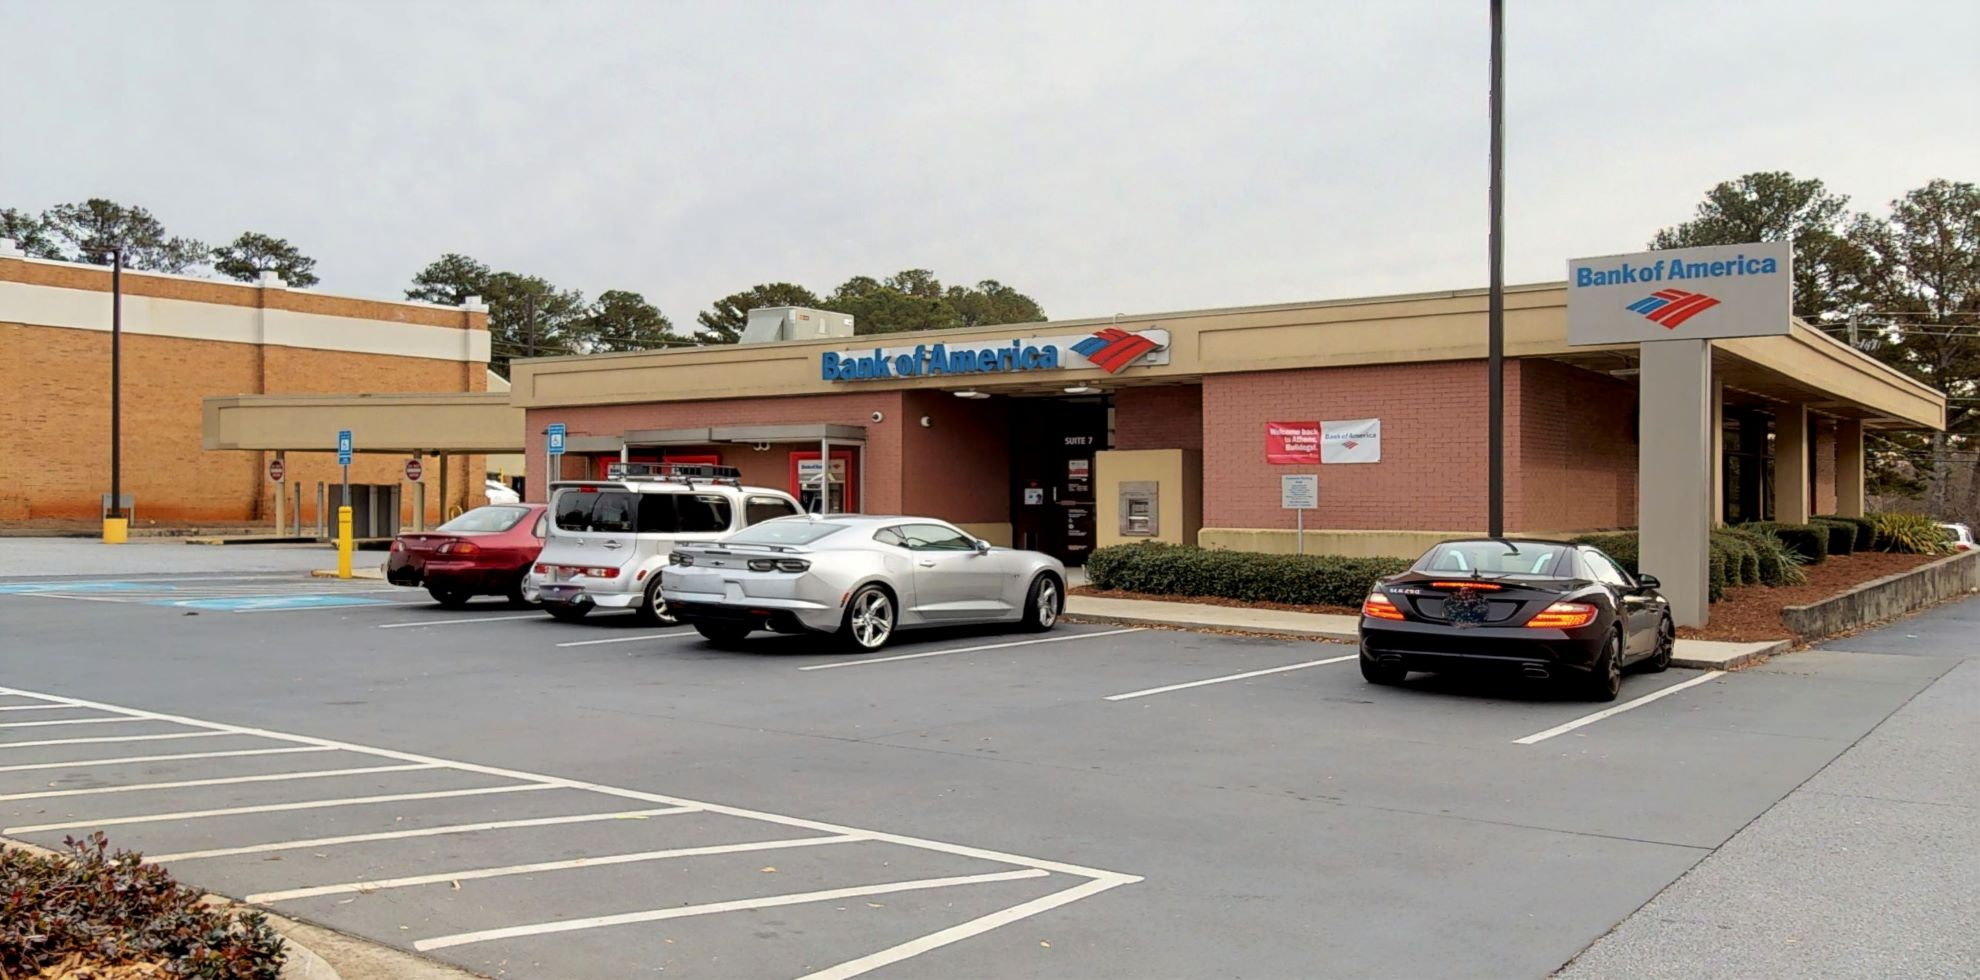 Bank of America financial center with drive-thru ATM   196 Alps Rd, Athens, GA 30606